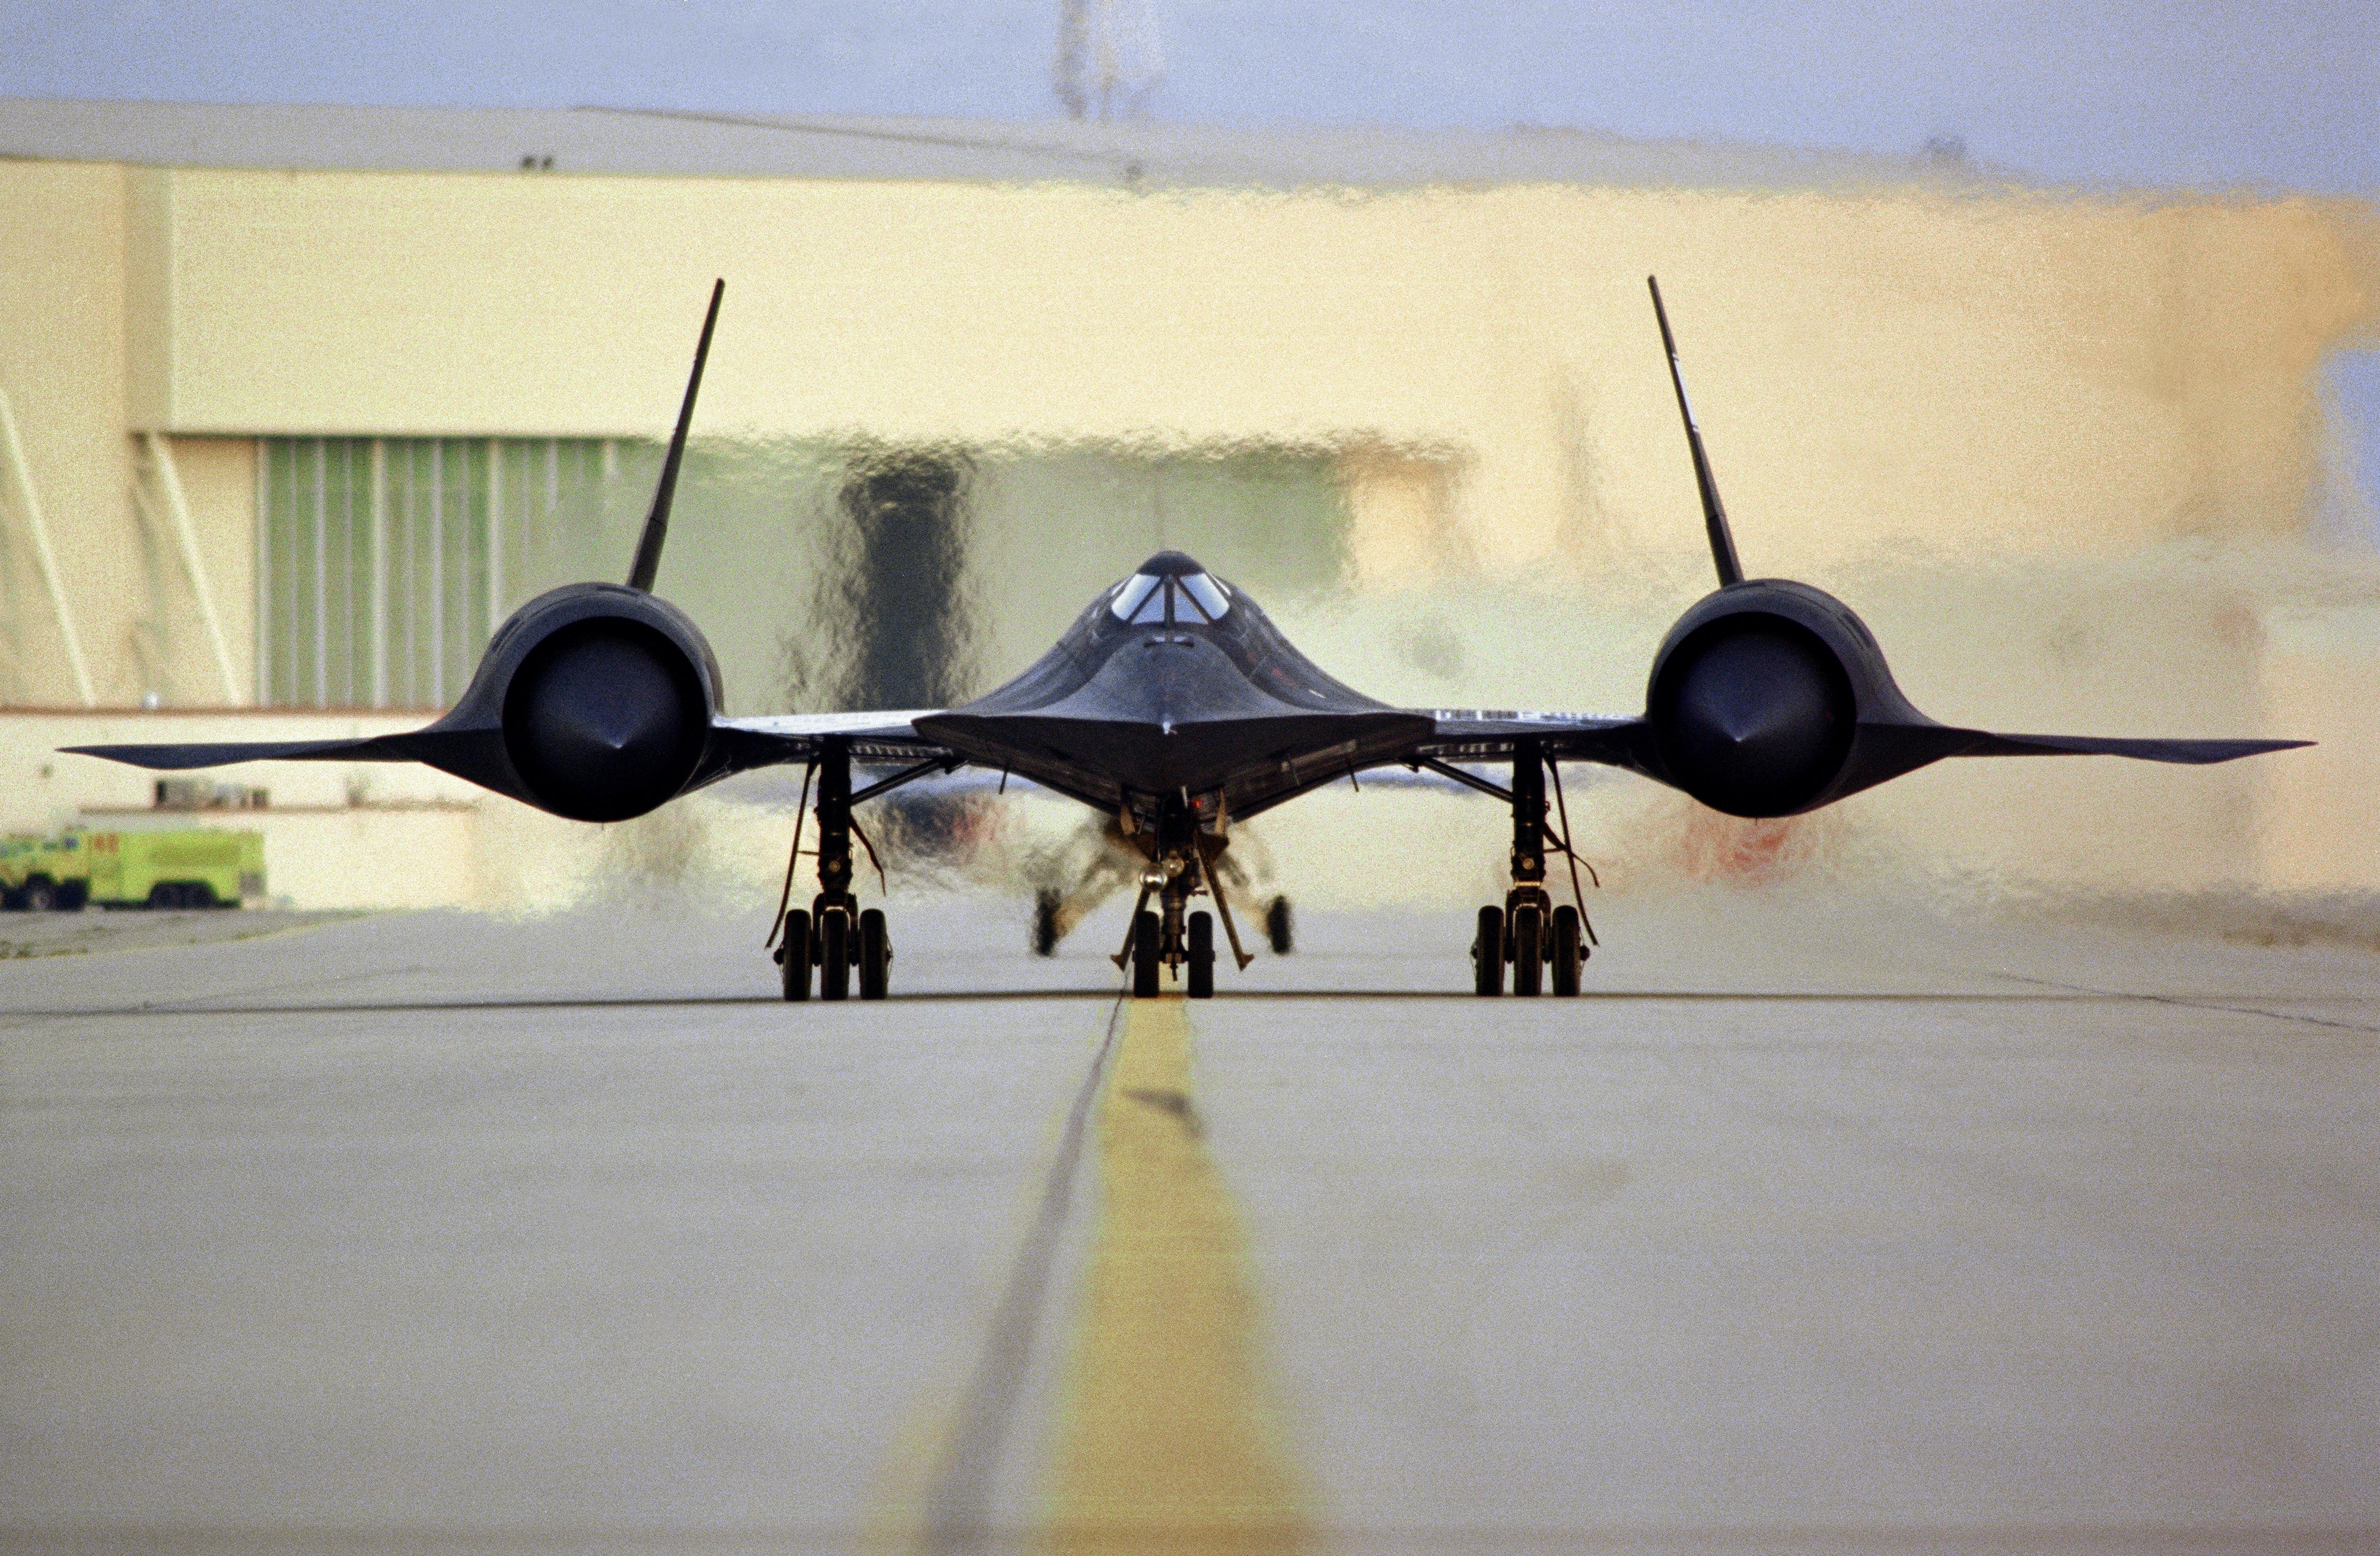 SR-71_taxi_on_ramp_with_engines_powered_up